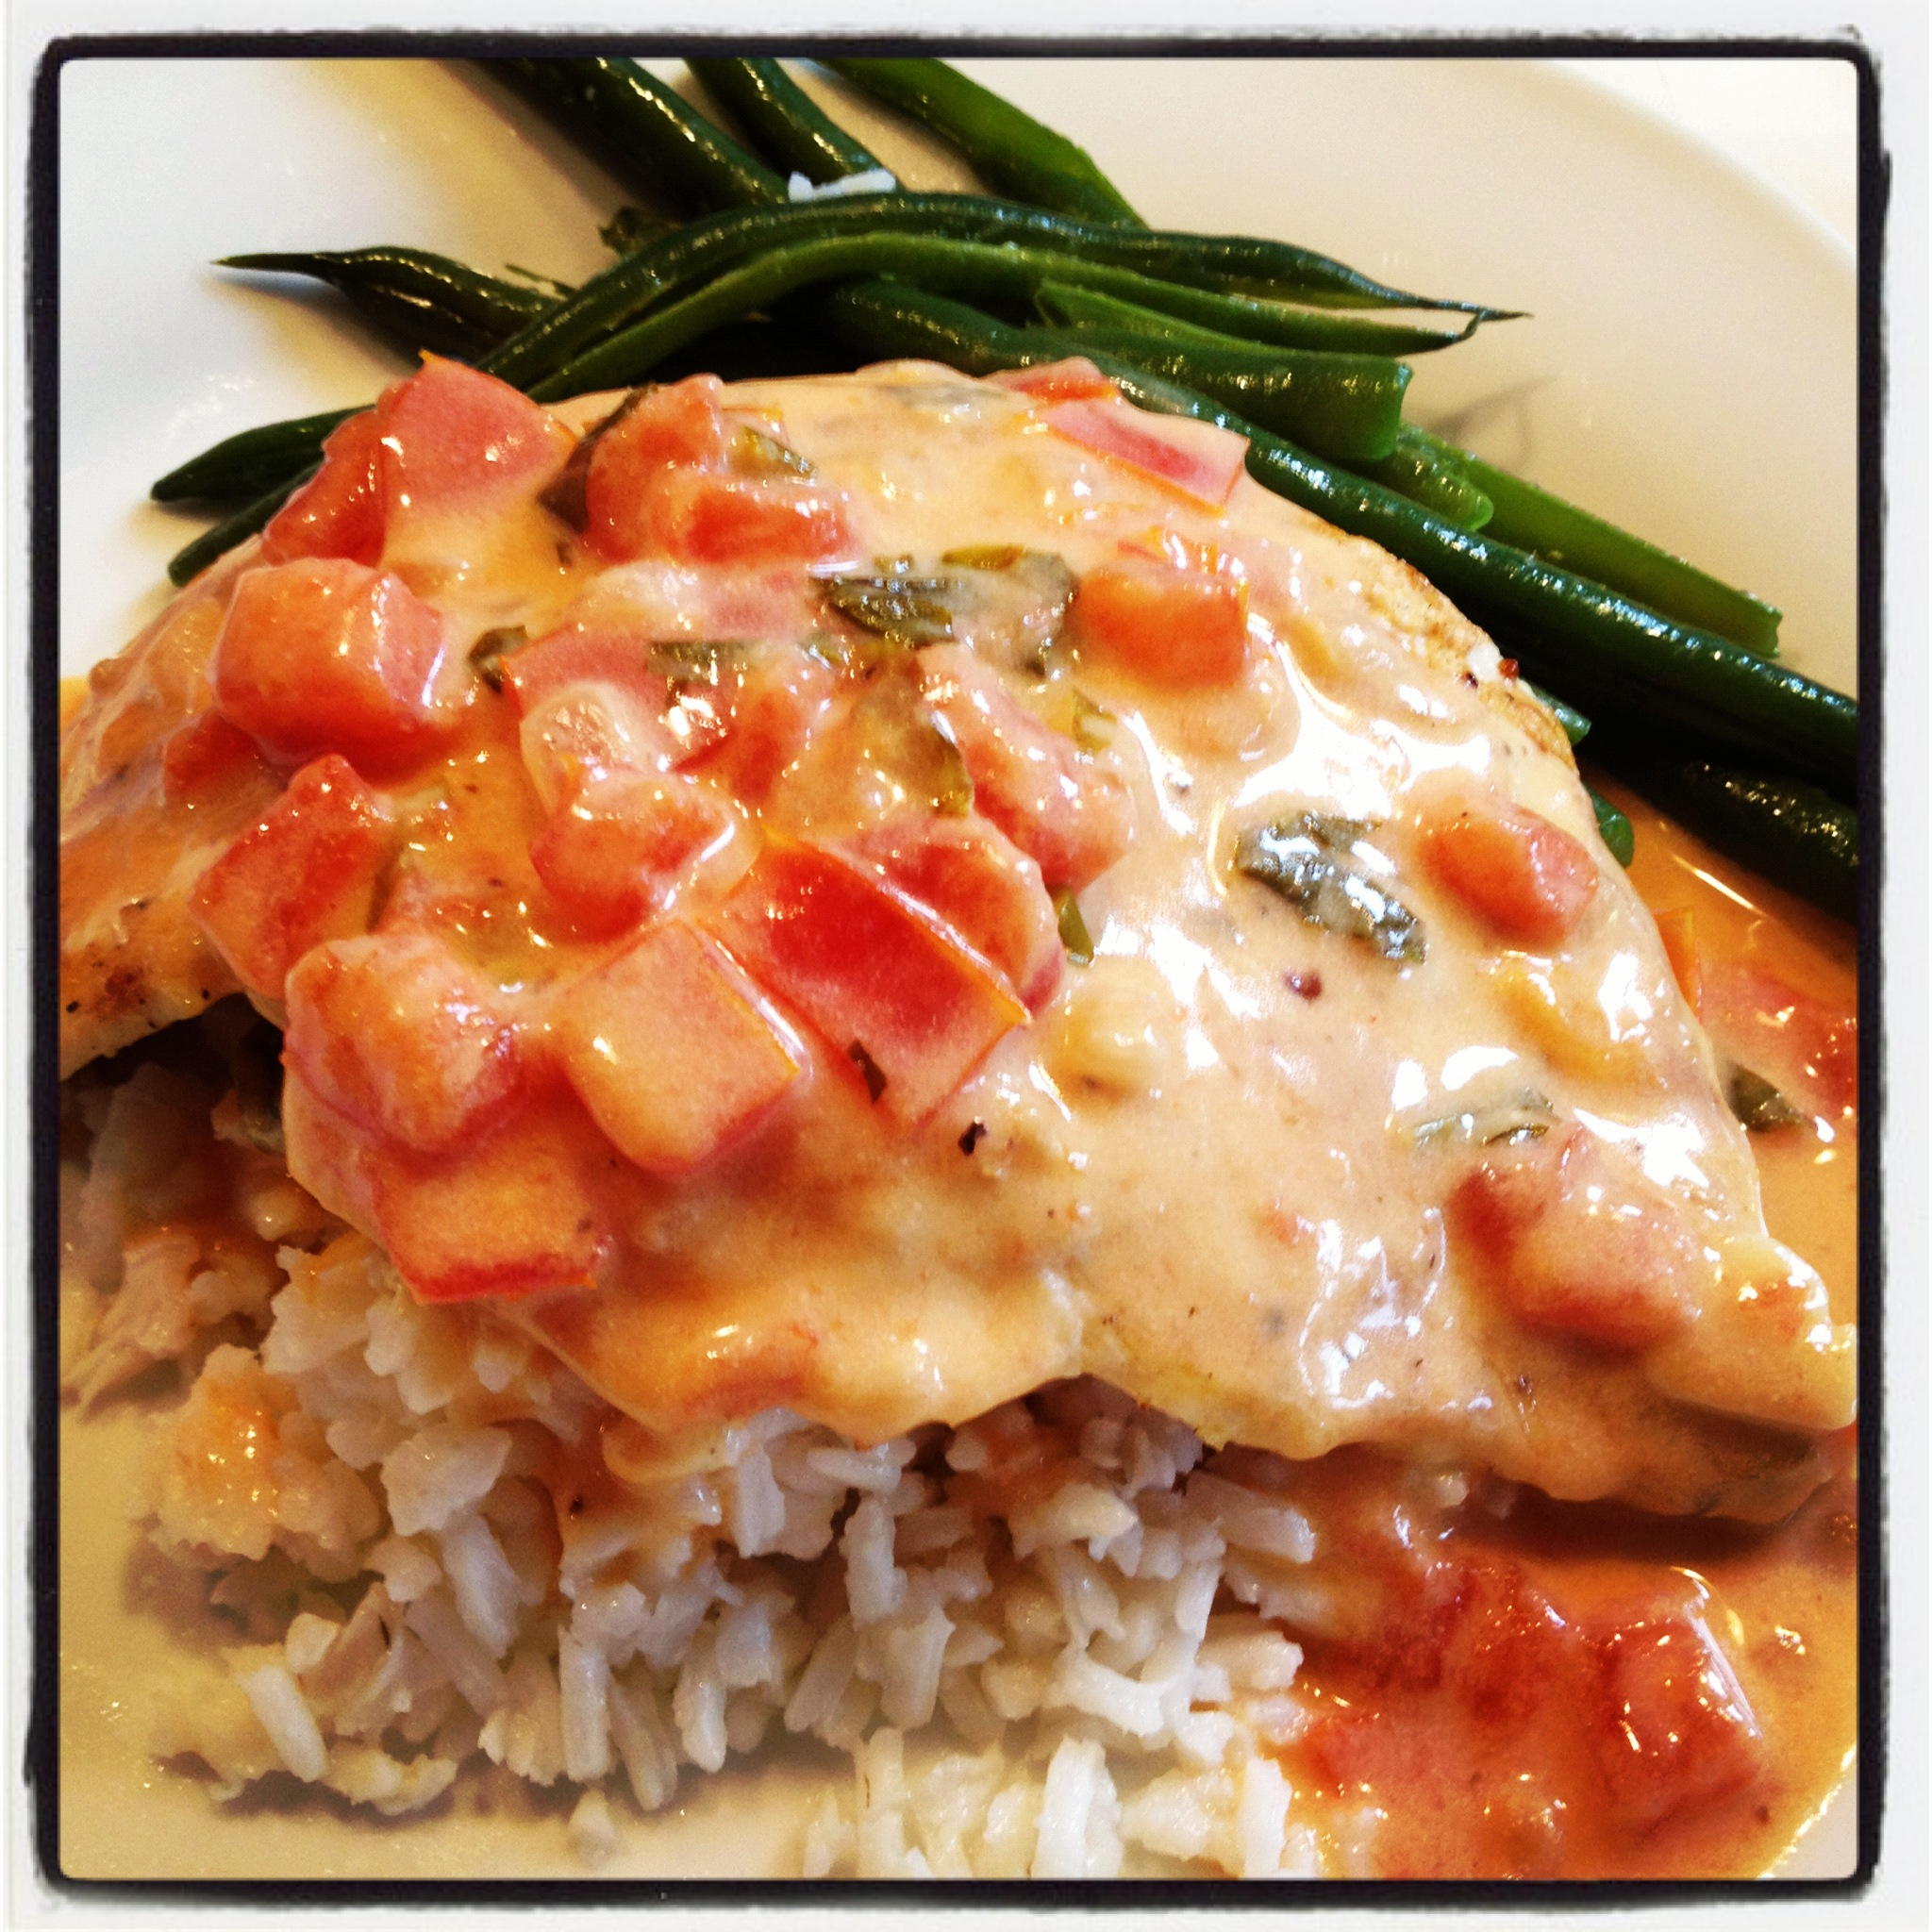 ... Food News | Grilled Chicken with Creamy Lemon, Tomato & Basil Sauce